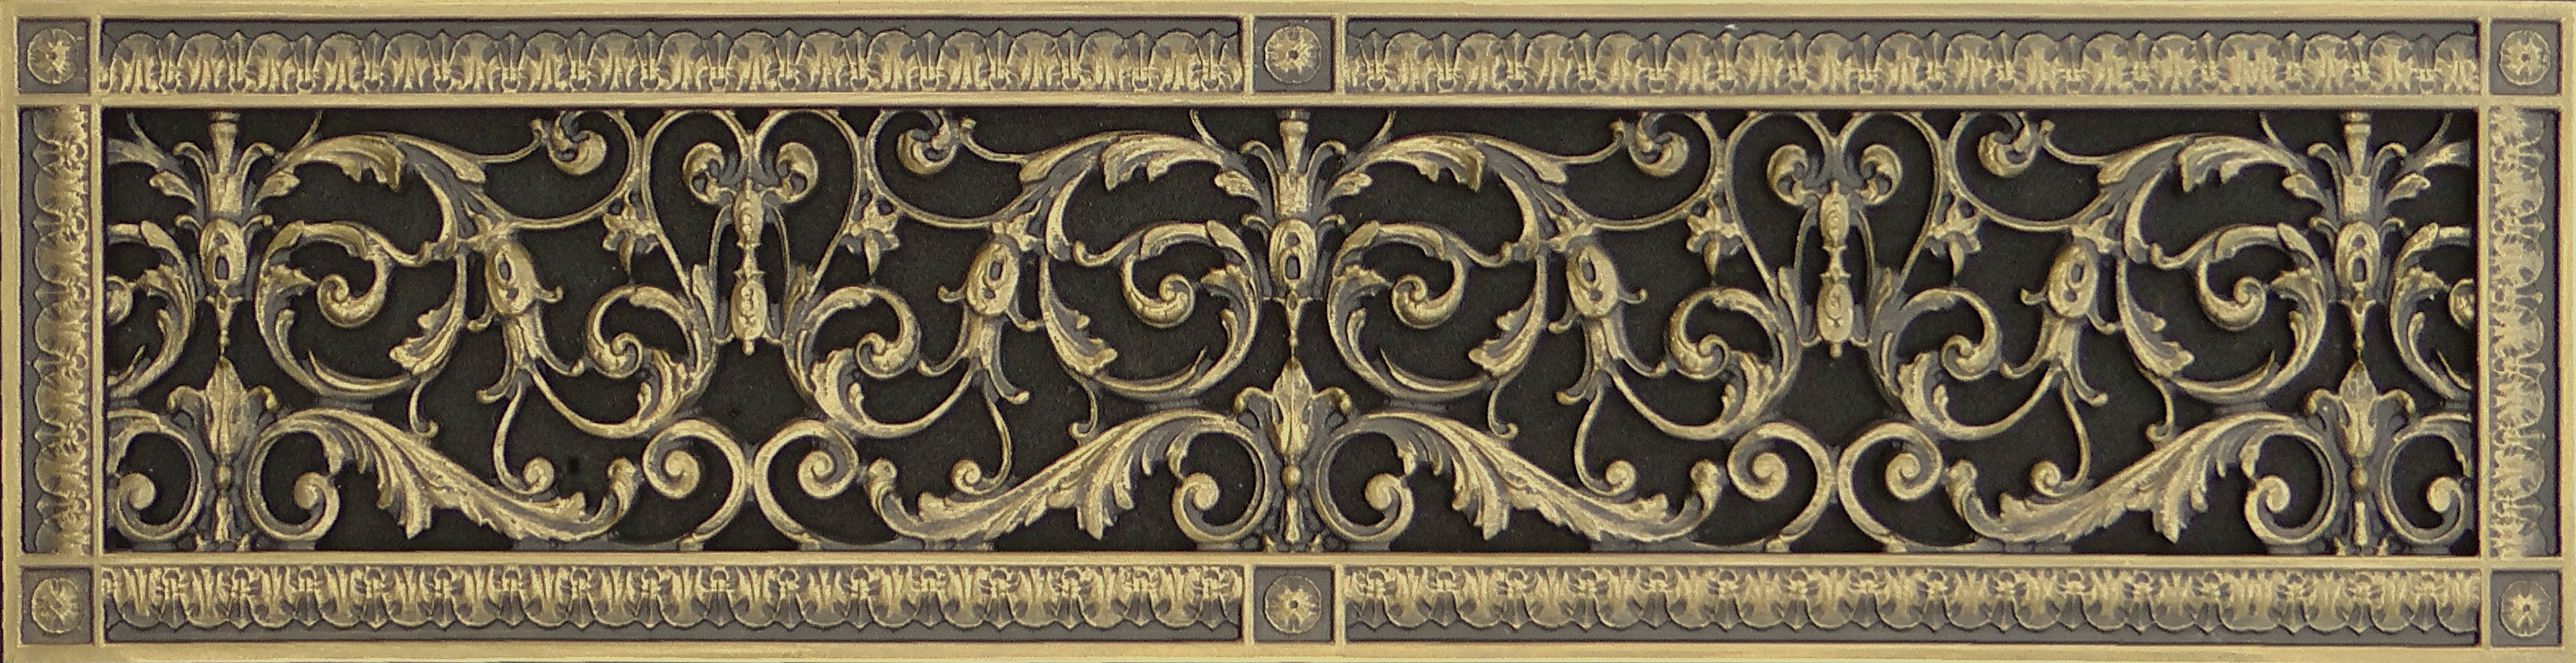 Decorative vent cover 6x30 in Louis XIV style in antique brass finish